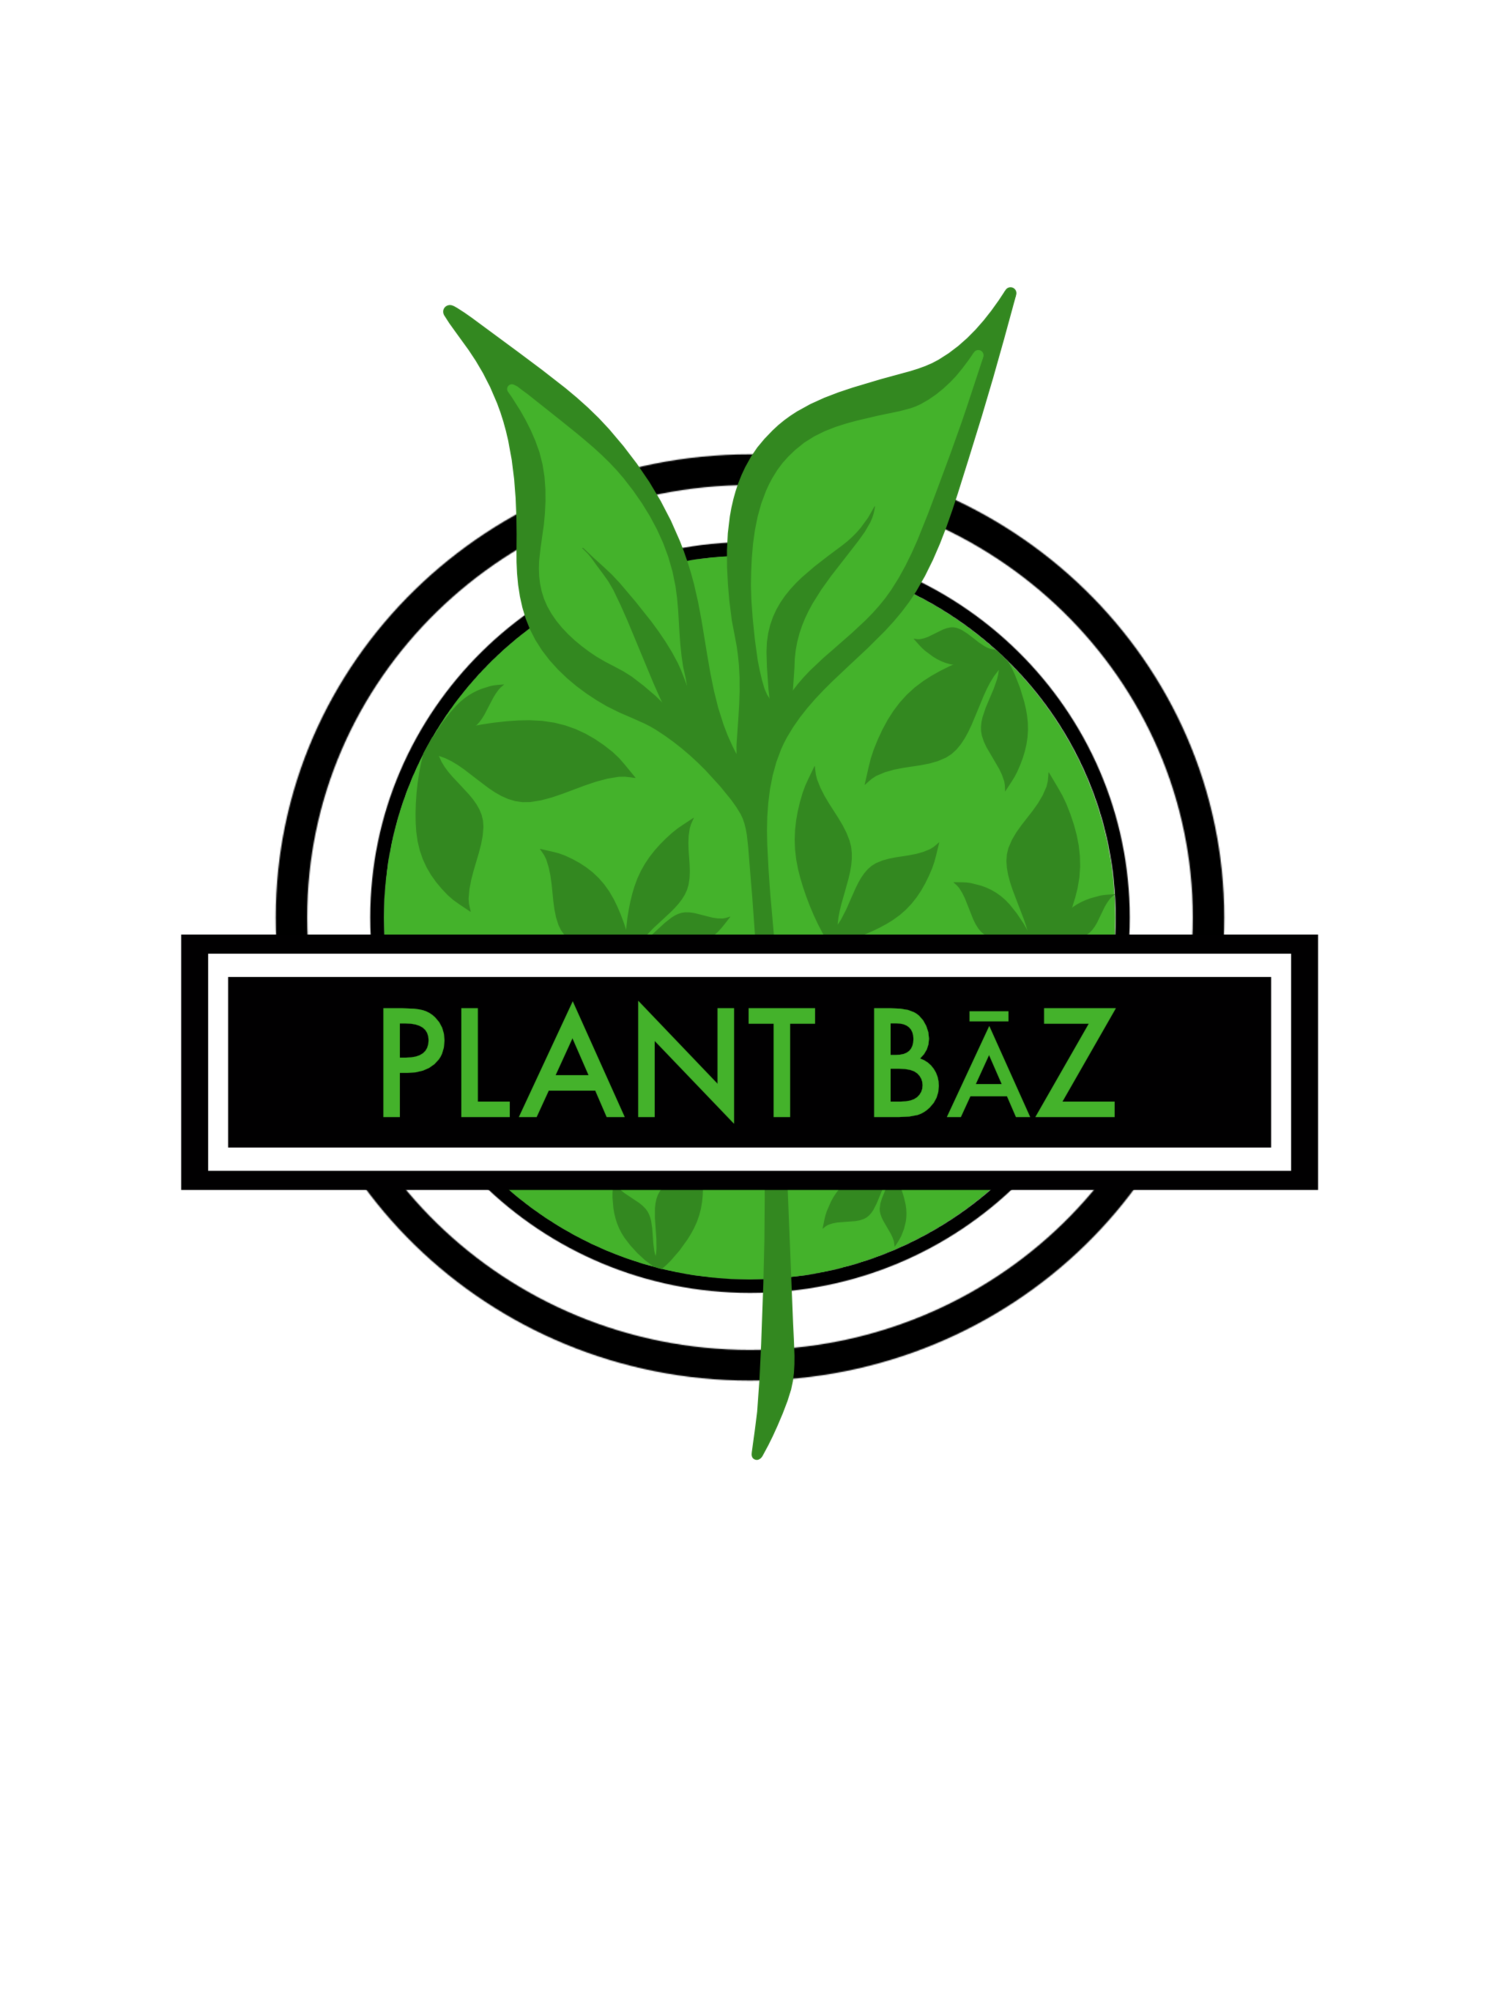 PLANT BAZ, Richmond  Vegan fast food, burritos, burgers, wings.